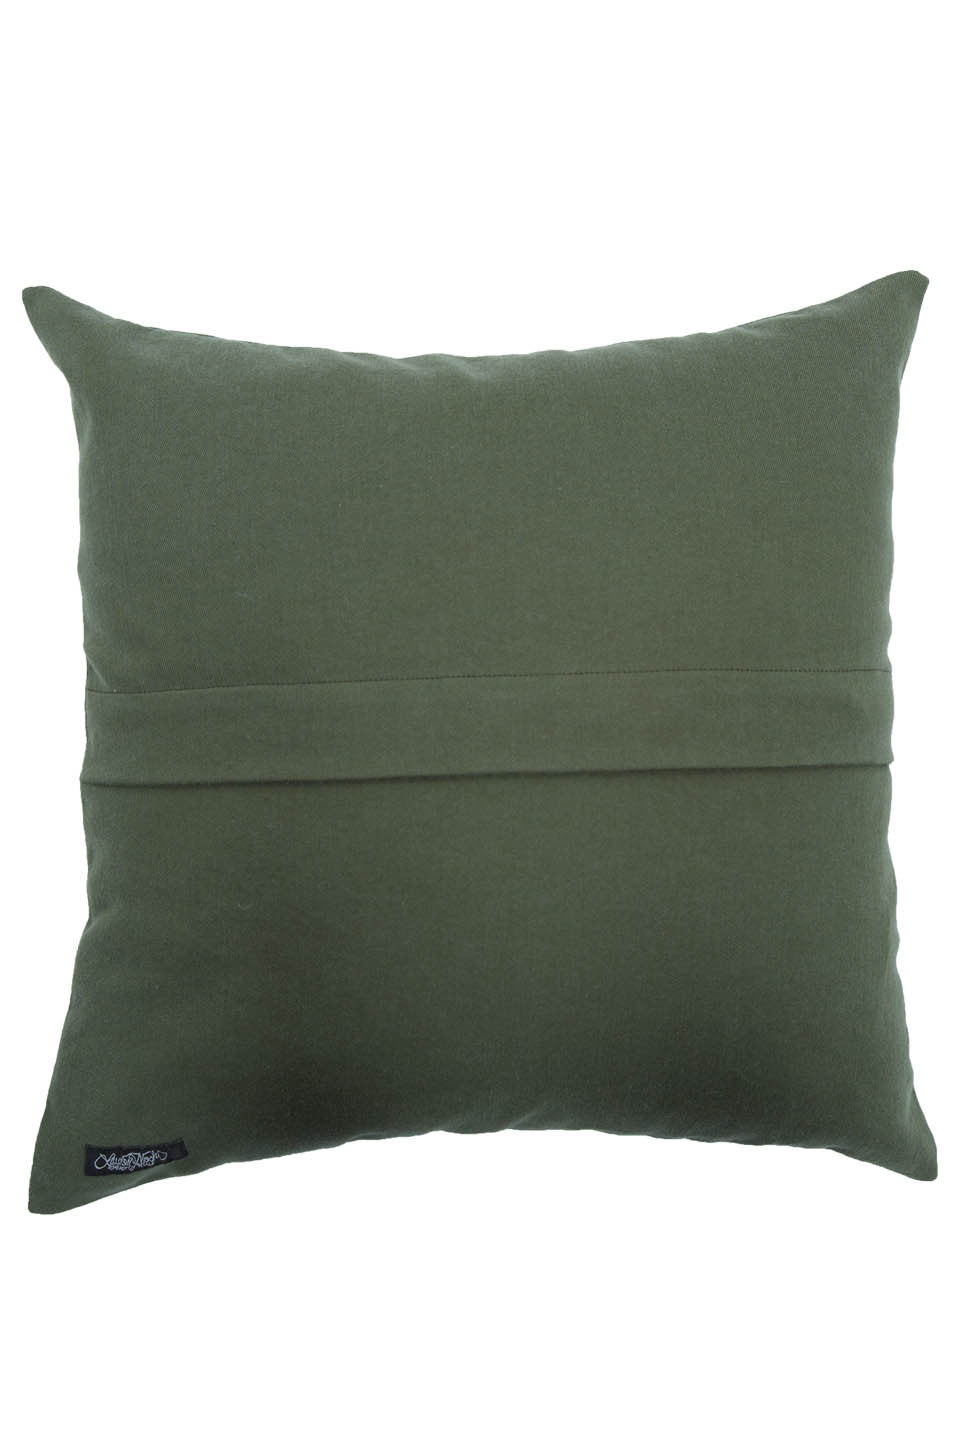 Lauren Moshi Women's Zody Color Cig Lip Canvas Pillow - Military